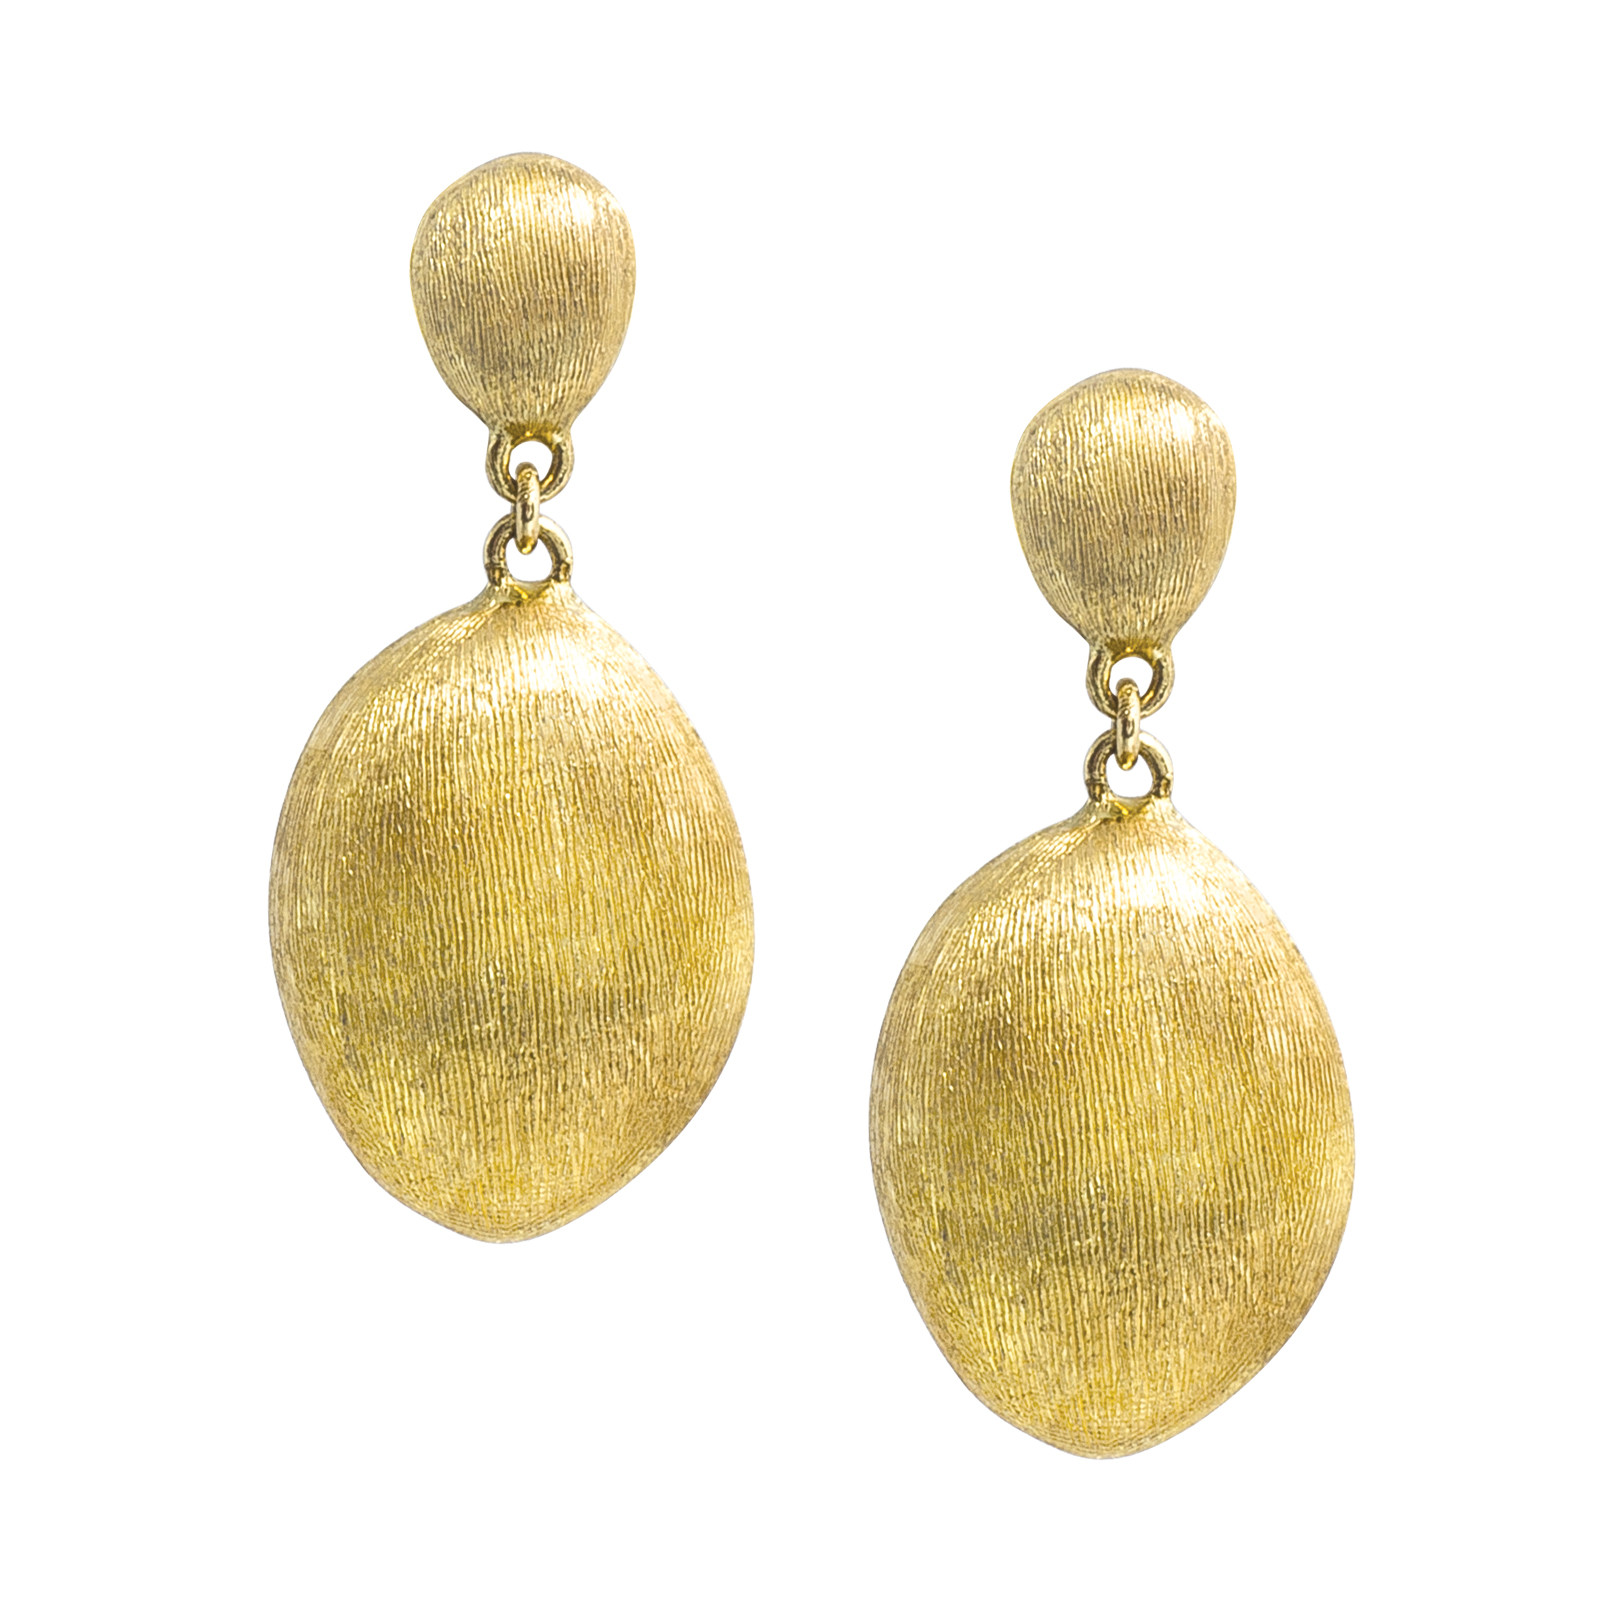 Vintage Marco Bicego Confetti Oro Brushed Gold Bean Earrings